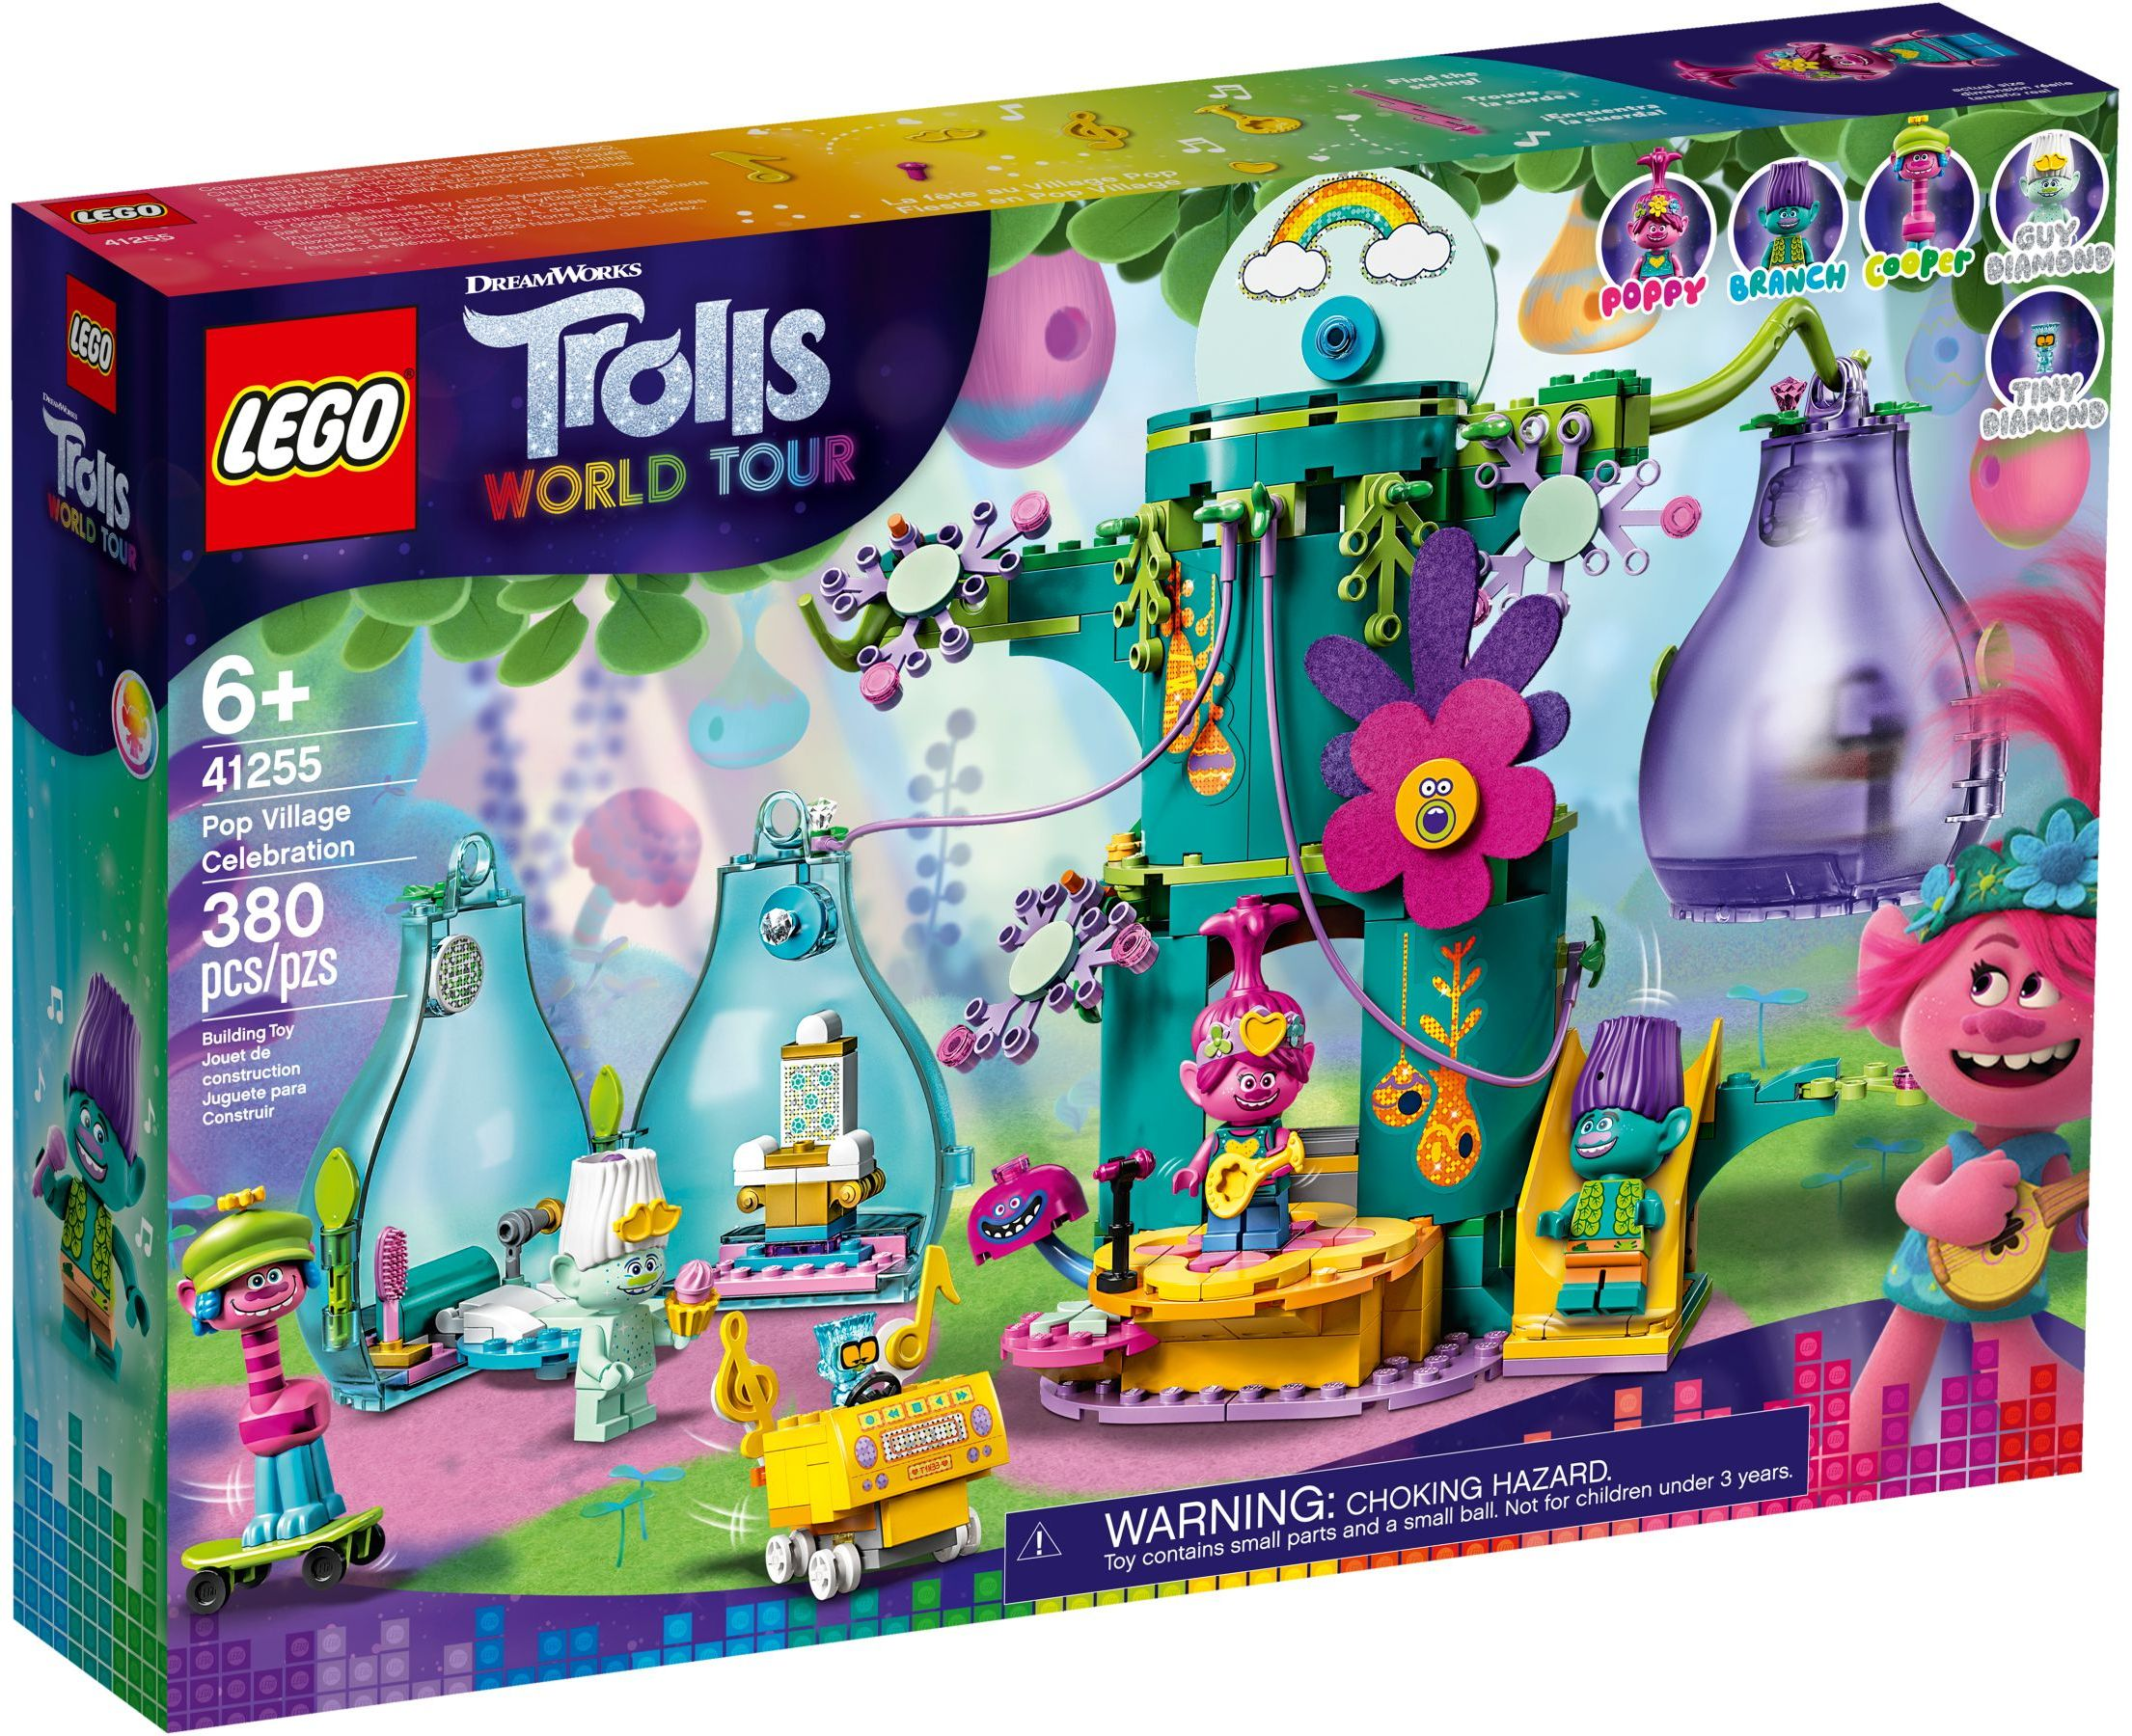 LEGO Trolls World Tour Sets: 41255 Pop Village Celebration NEW